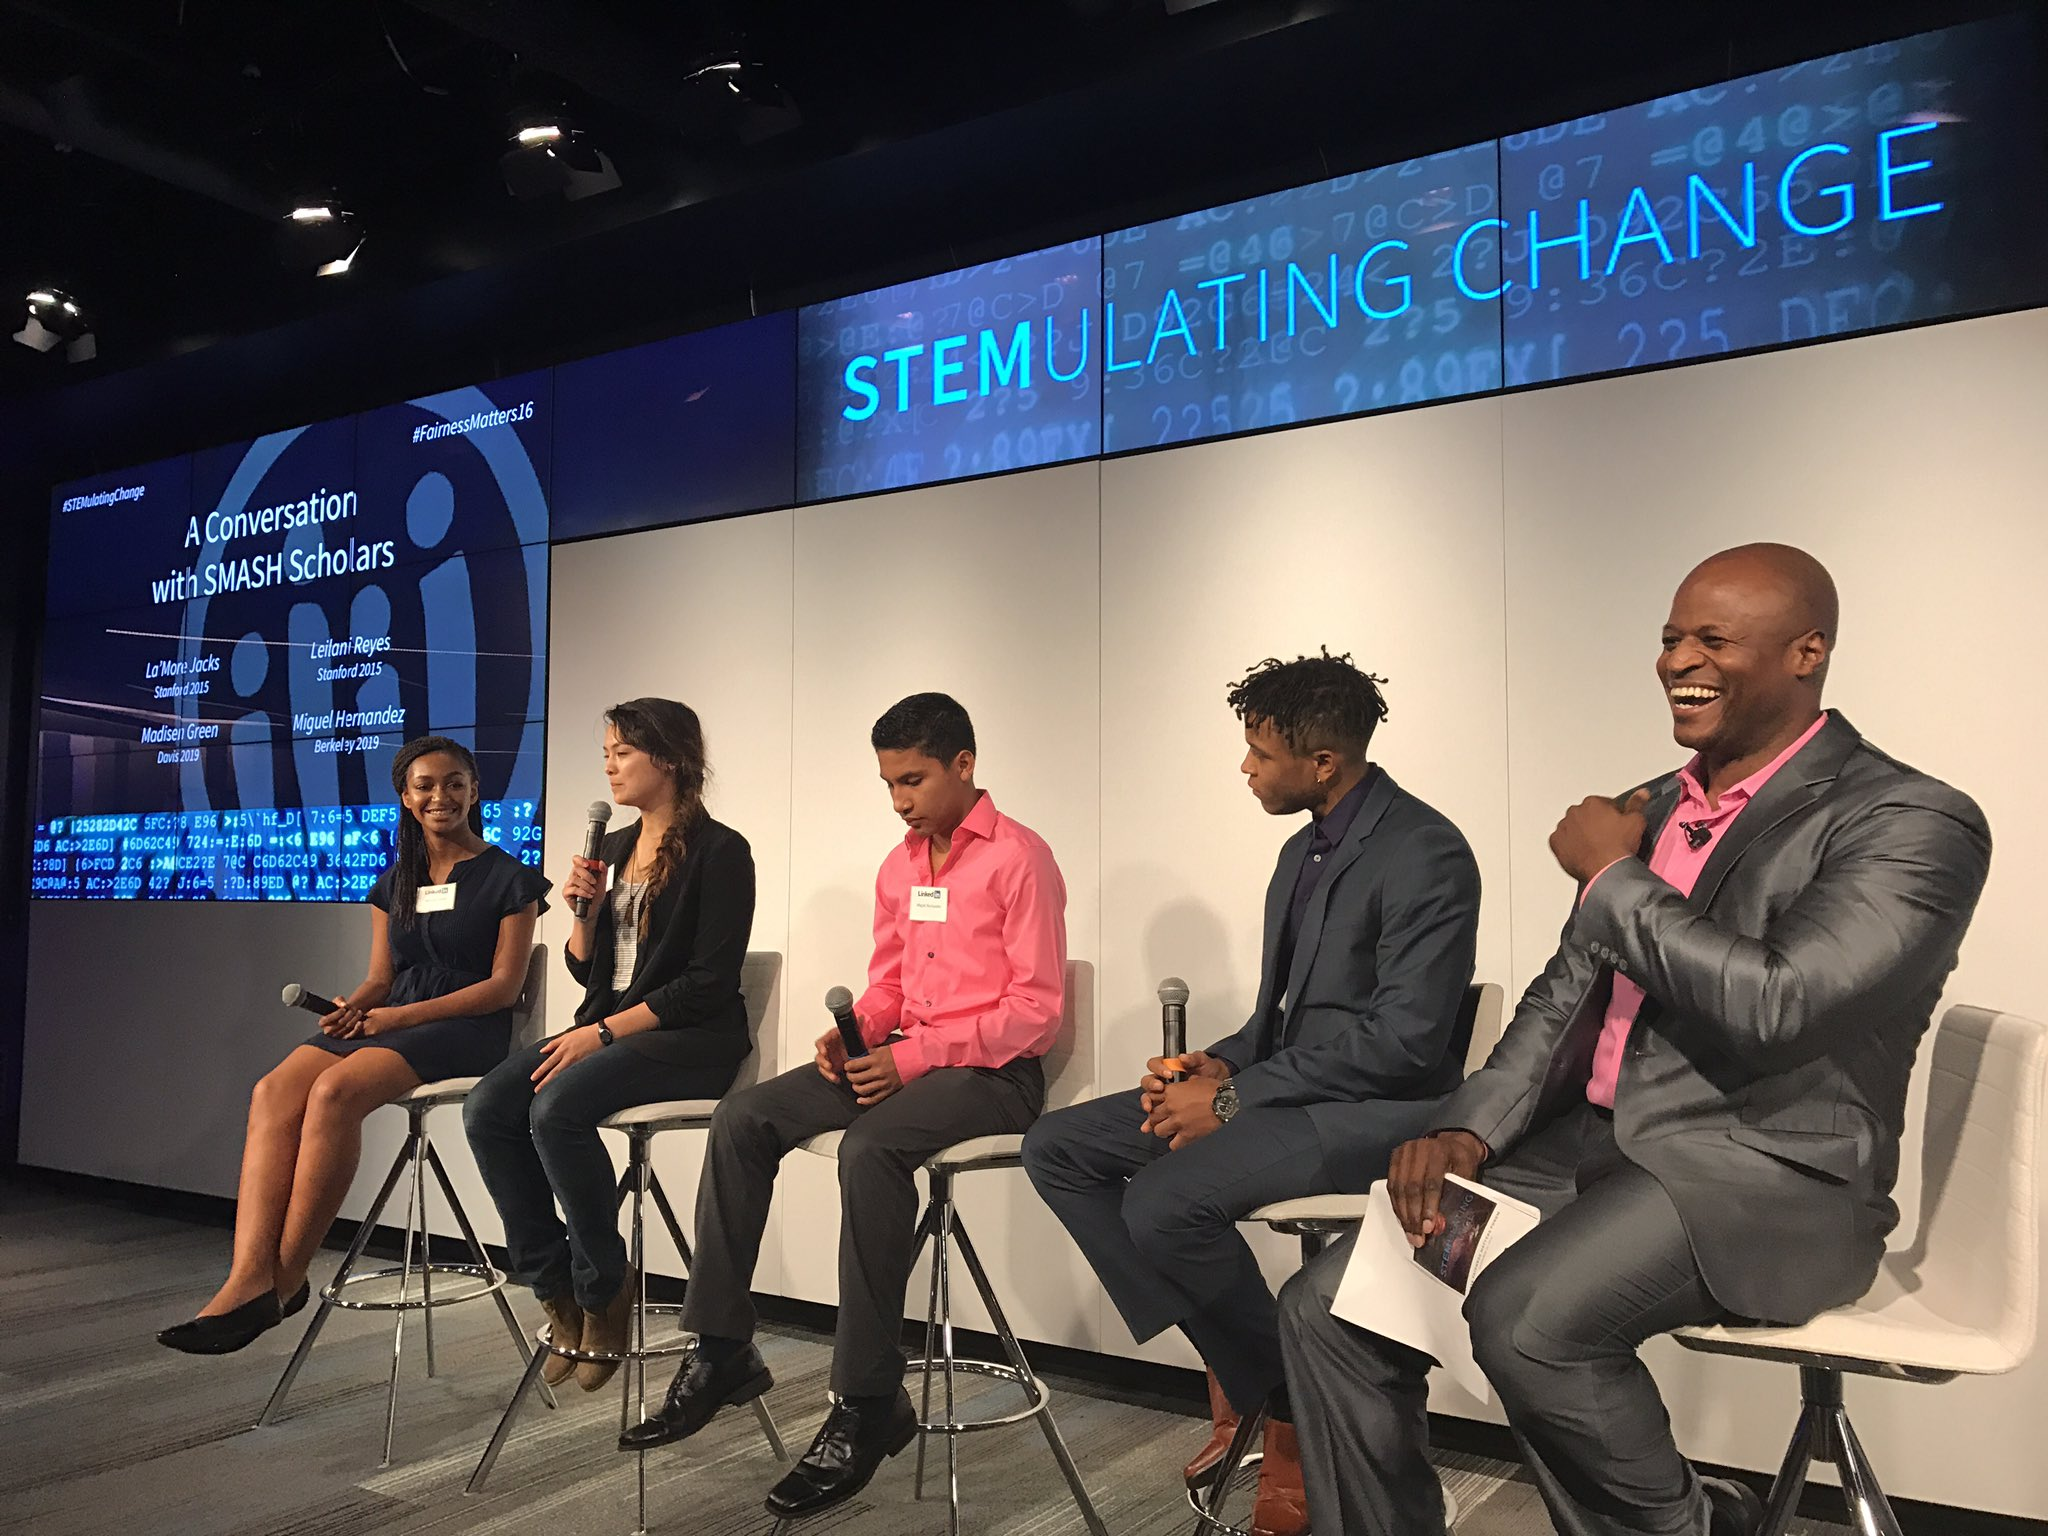 A much-needed moment of hope. #stemulatingchange #fairnessmatters16 https://t.co/GsYVow366i